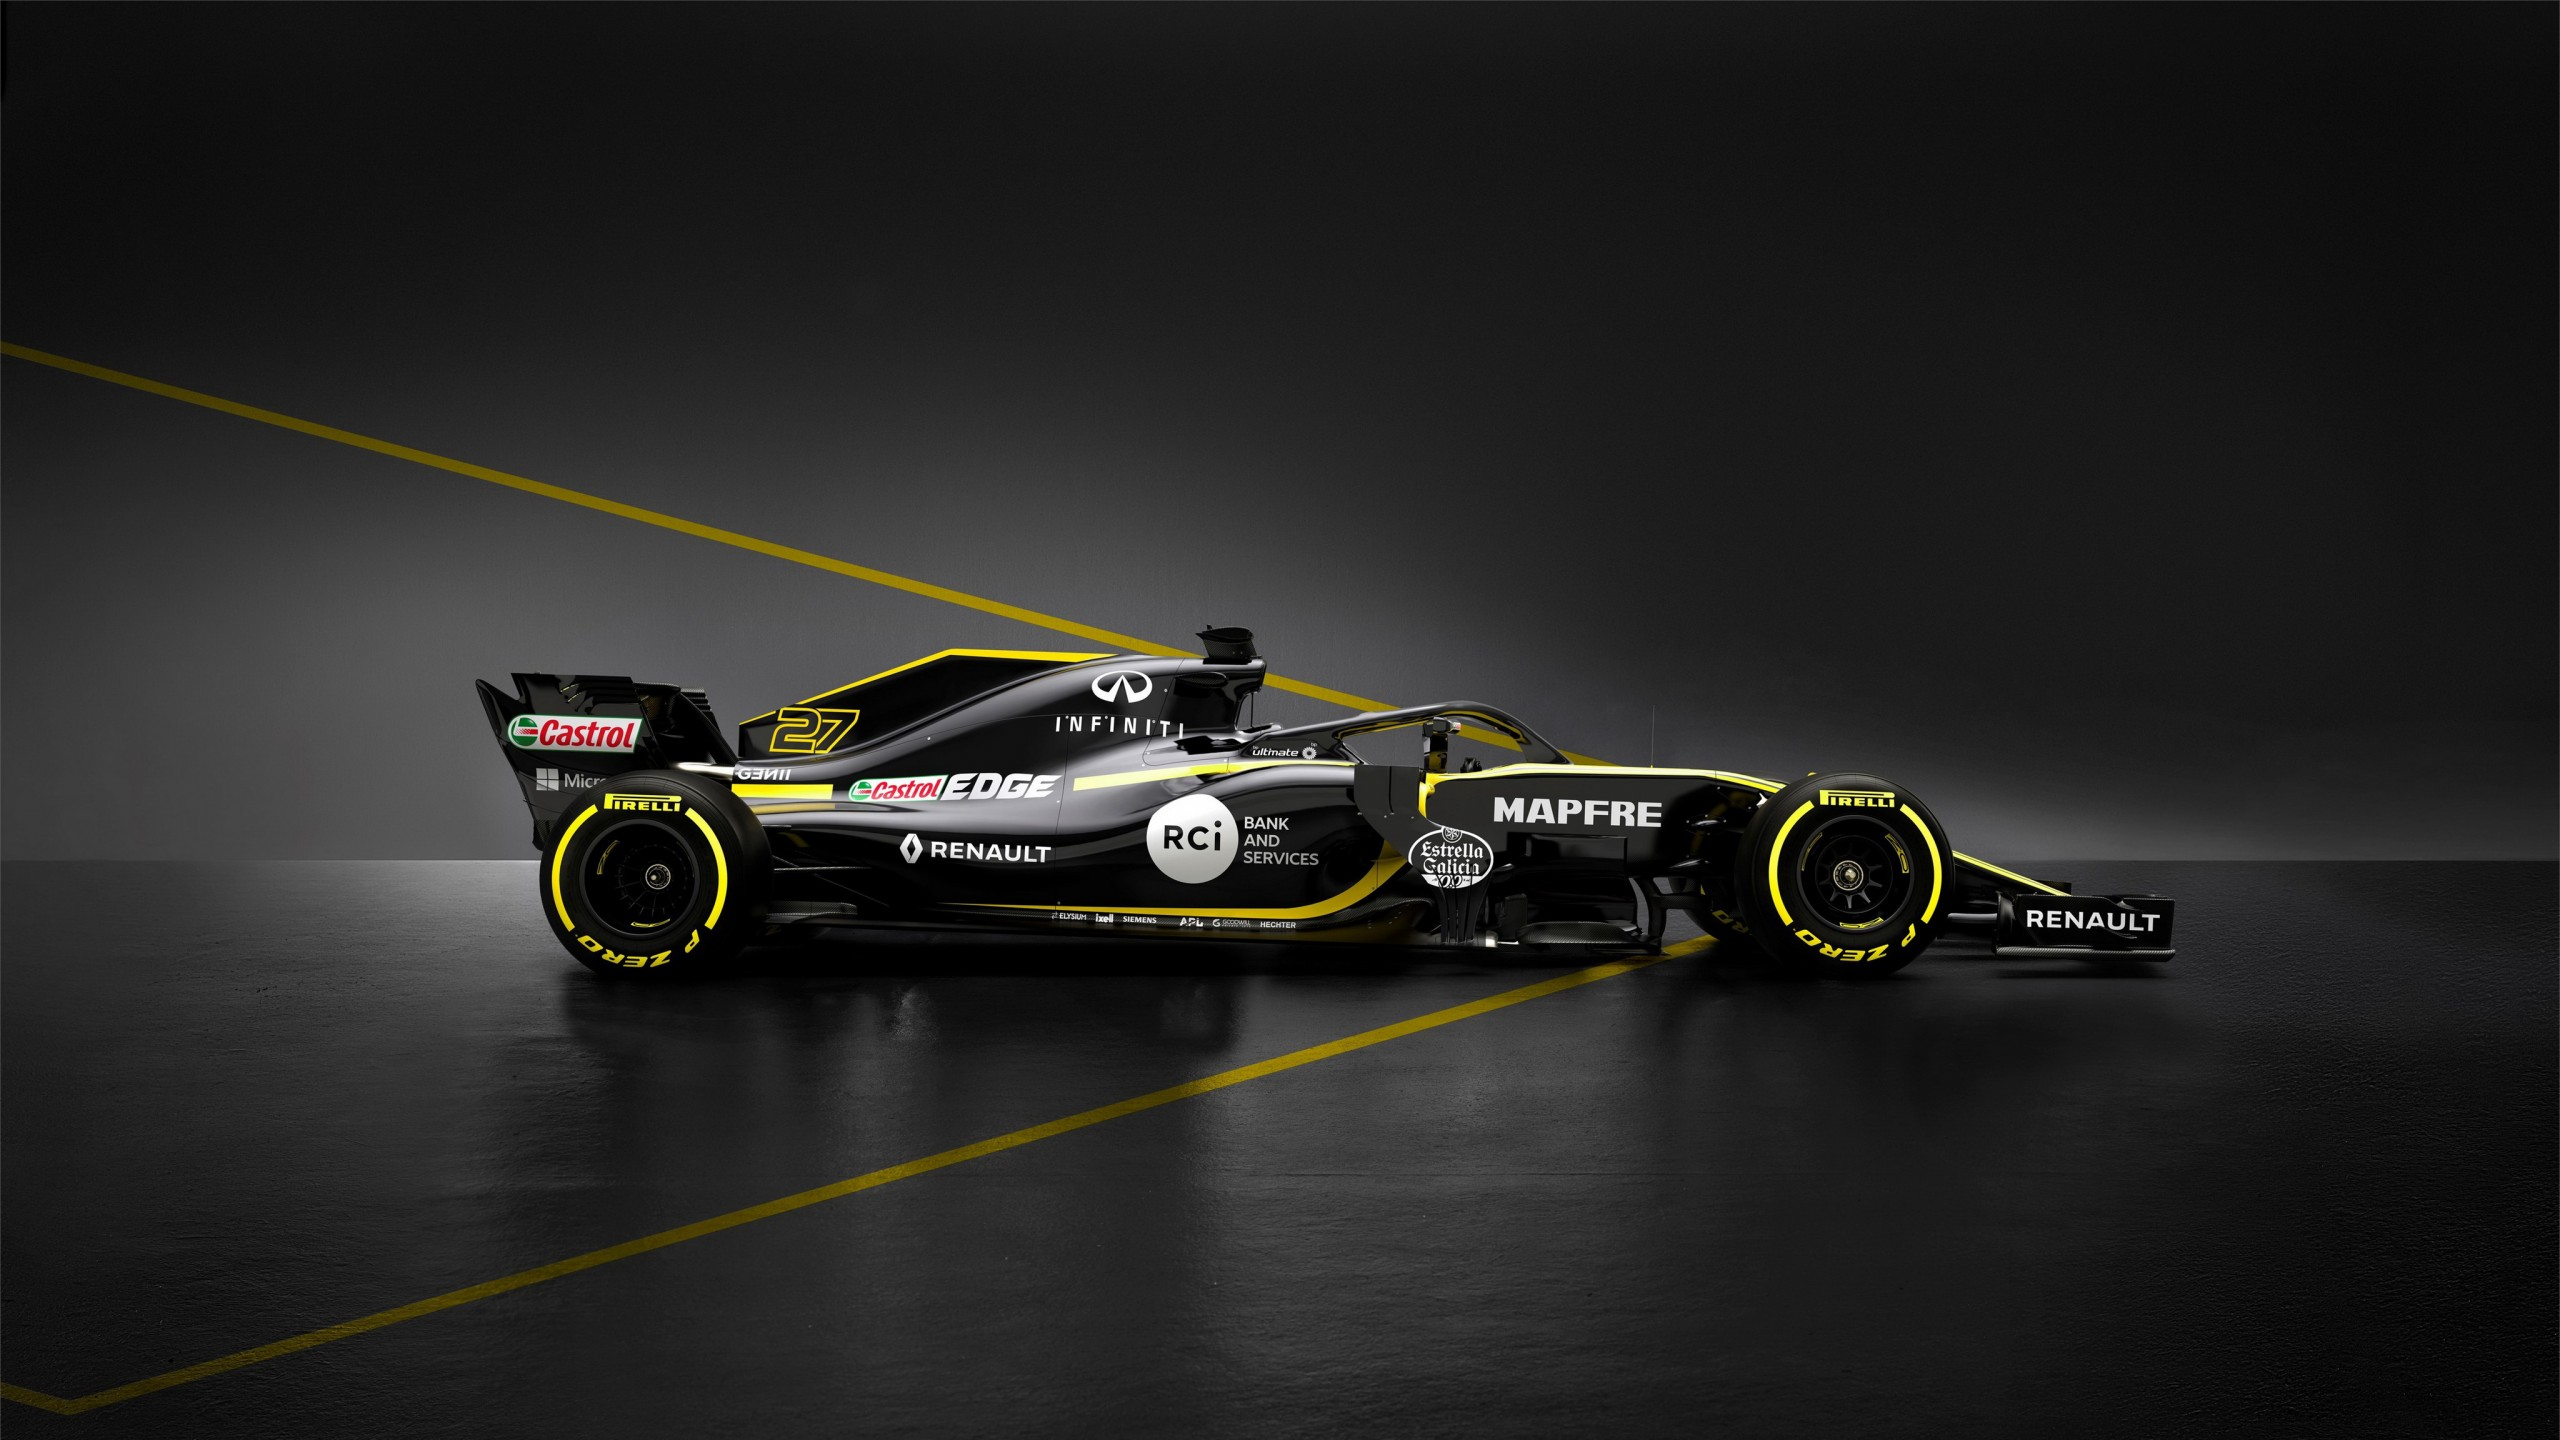 2018 Renault Rs18 F1 Formula 1 Car 4k 3 Wallpaper Hd Car